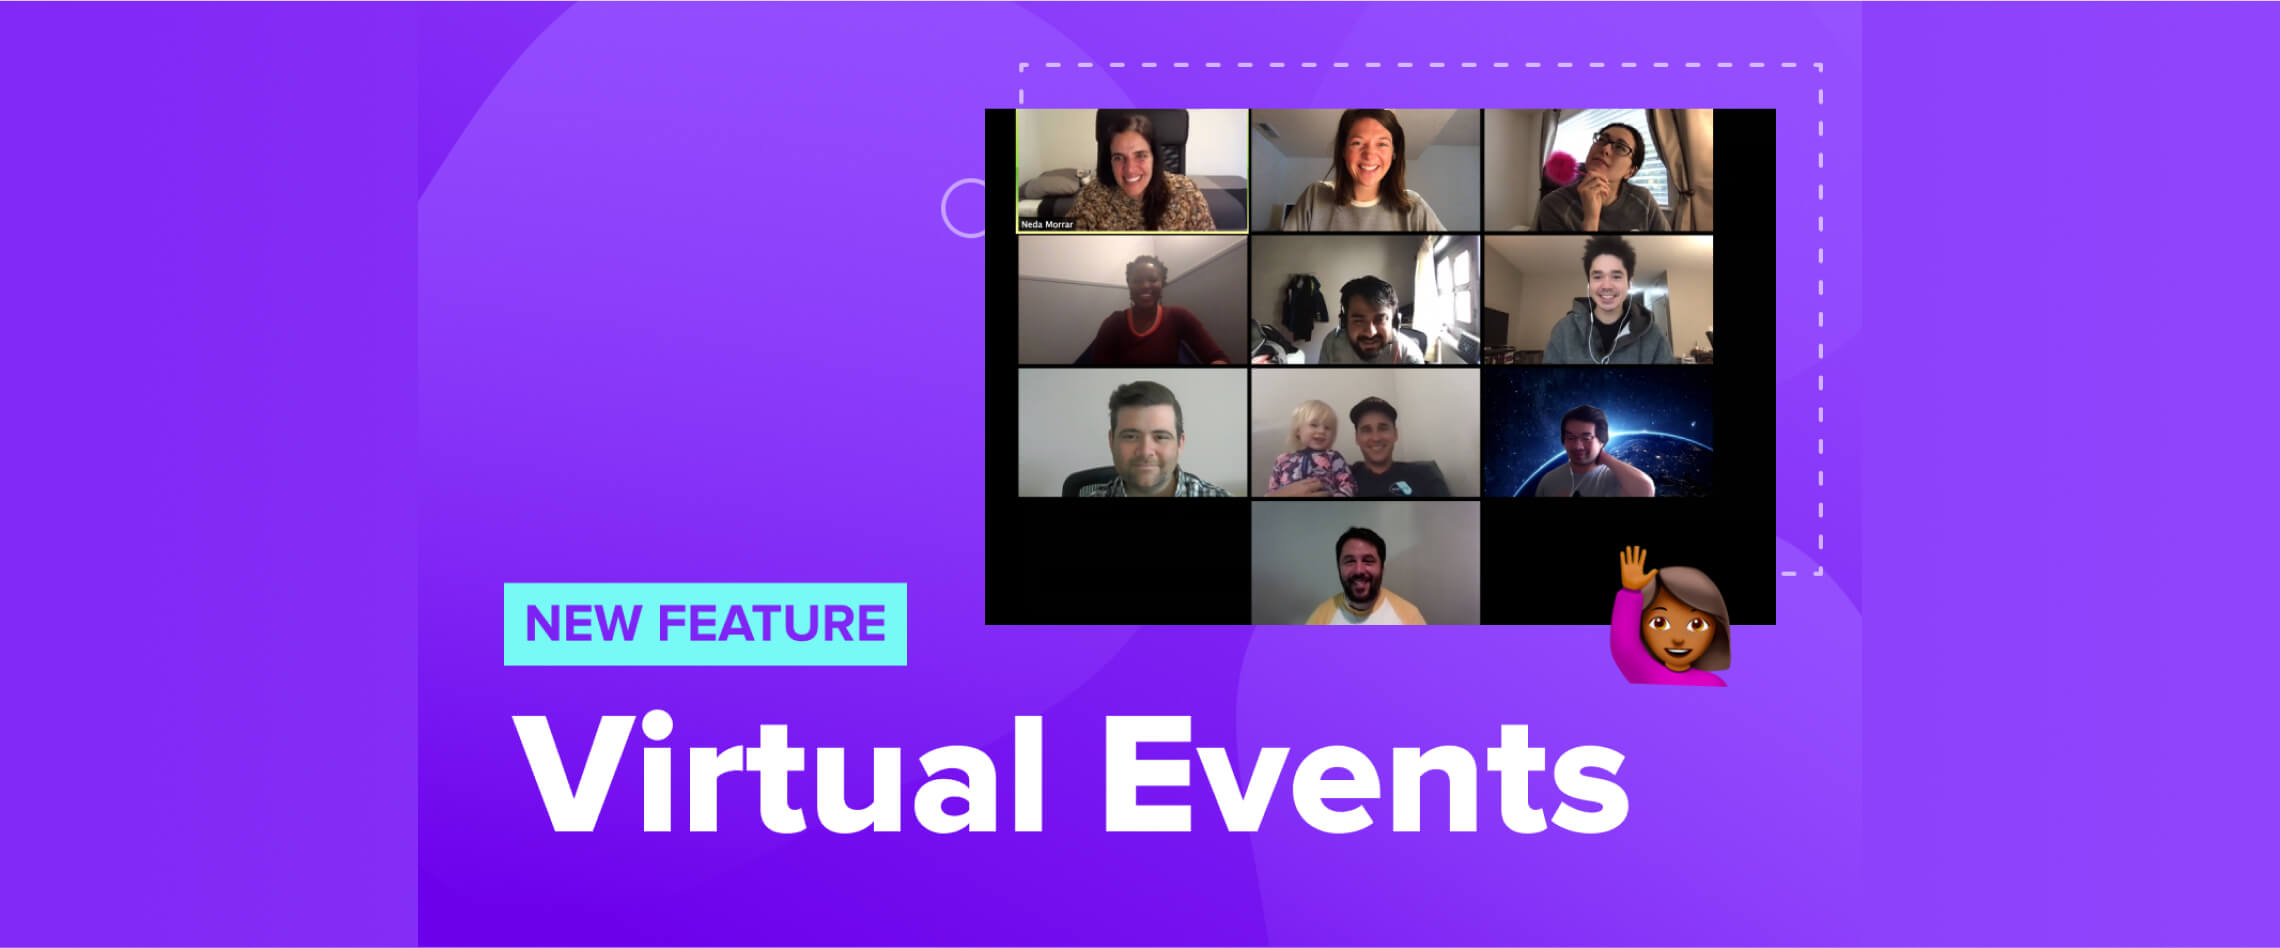 New feature - virtual events